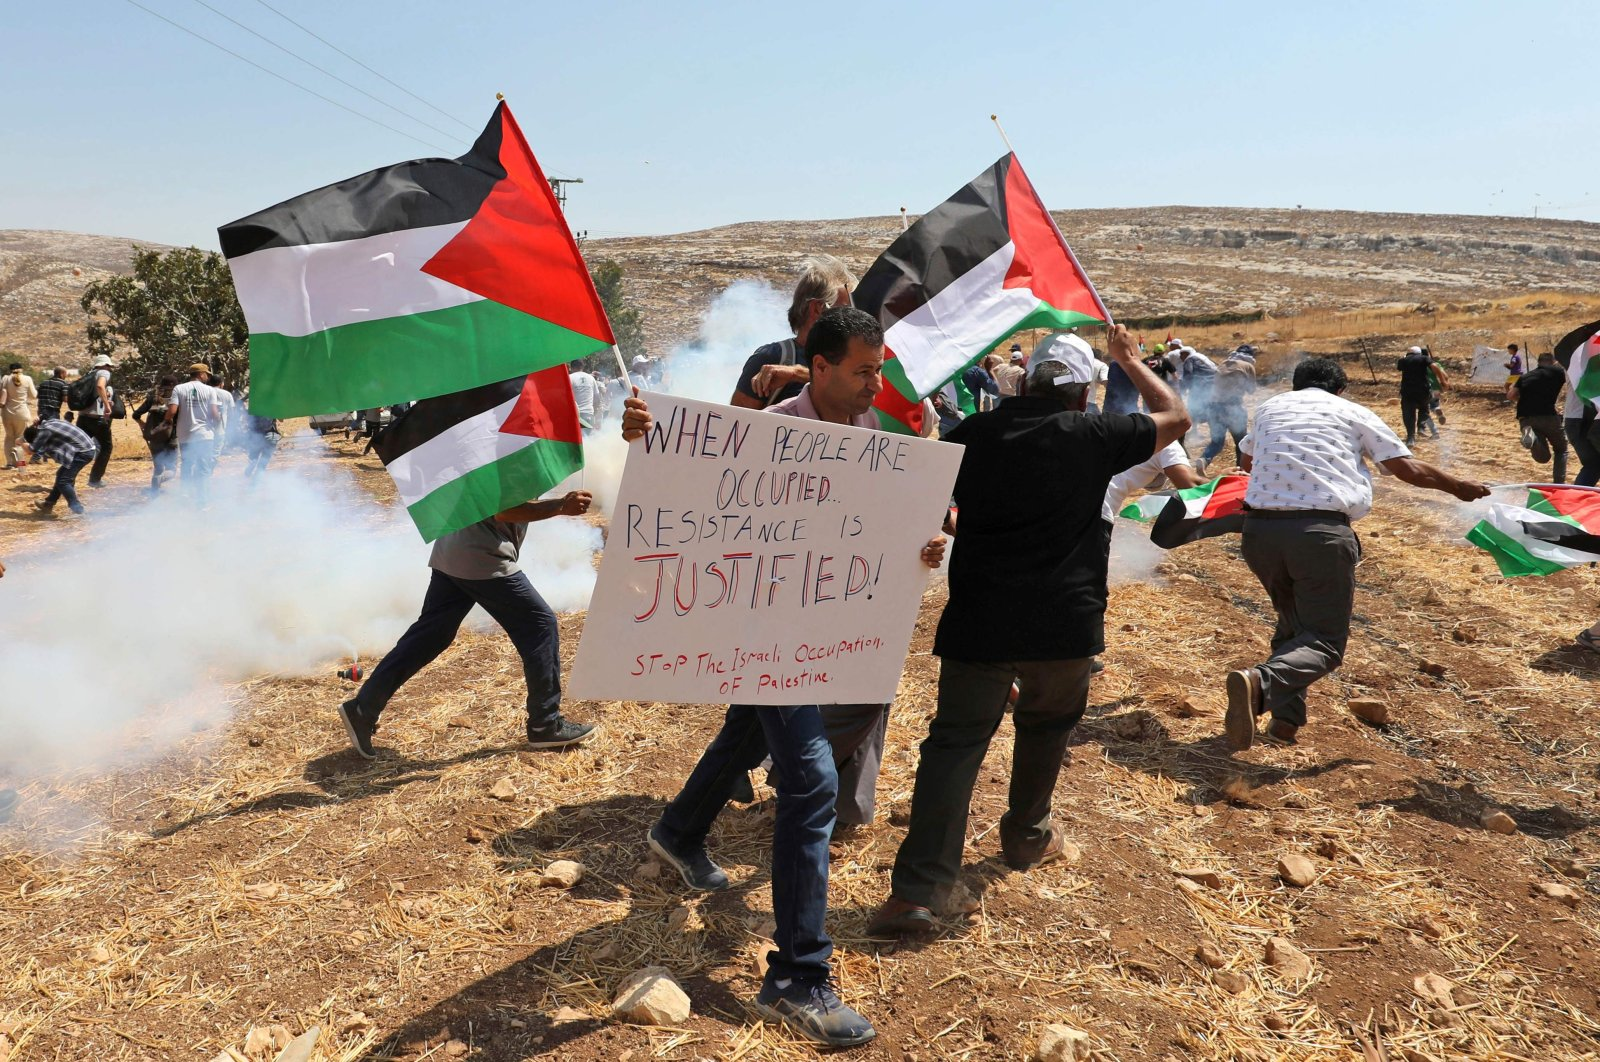 Palestinian protesters run from tear gas canisters fired by Israeli troops during clashes following a demonstration against the expropriation of Palestinian land by Israel, in the village of Kafr Malik northeast of Ramallah in the Israeli-occupied West Bank on Sept. 13, 2019. (AFP Photo)